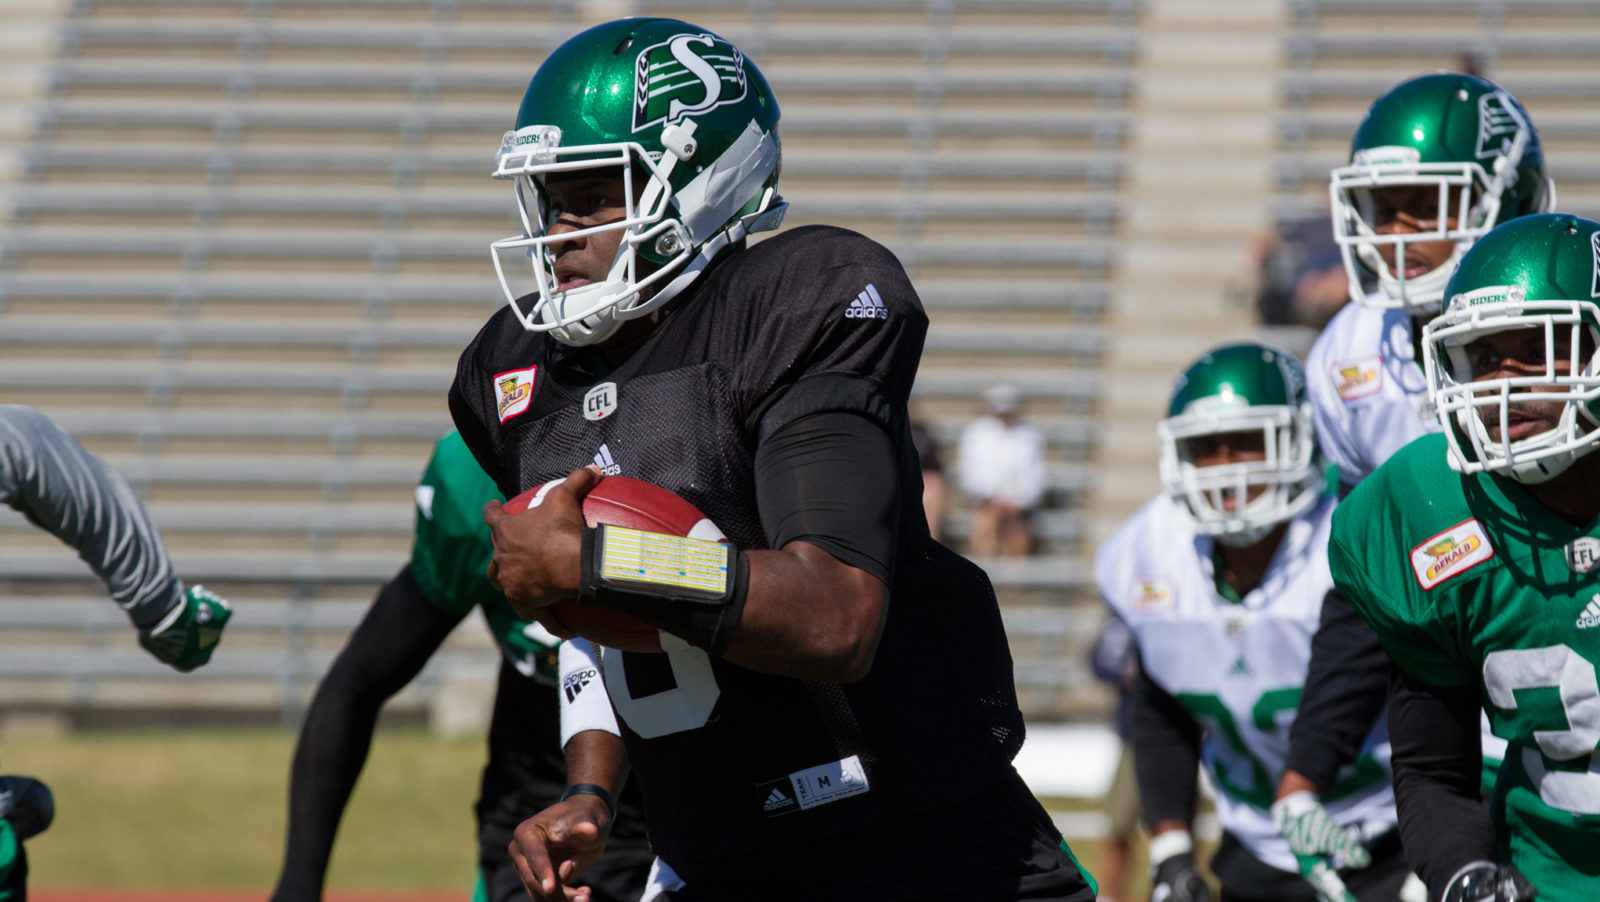 Vince Young waived by CFL's Roughriders after hamstring injury